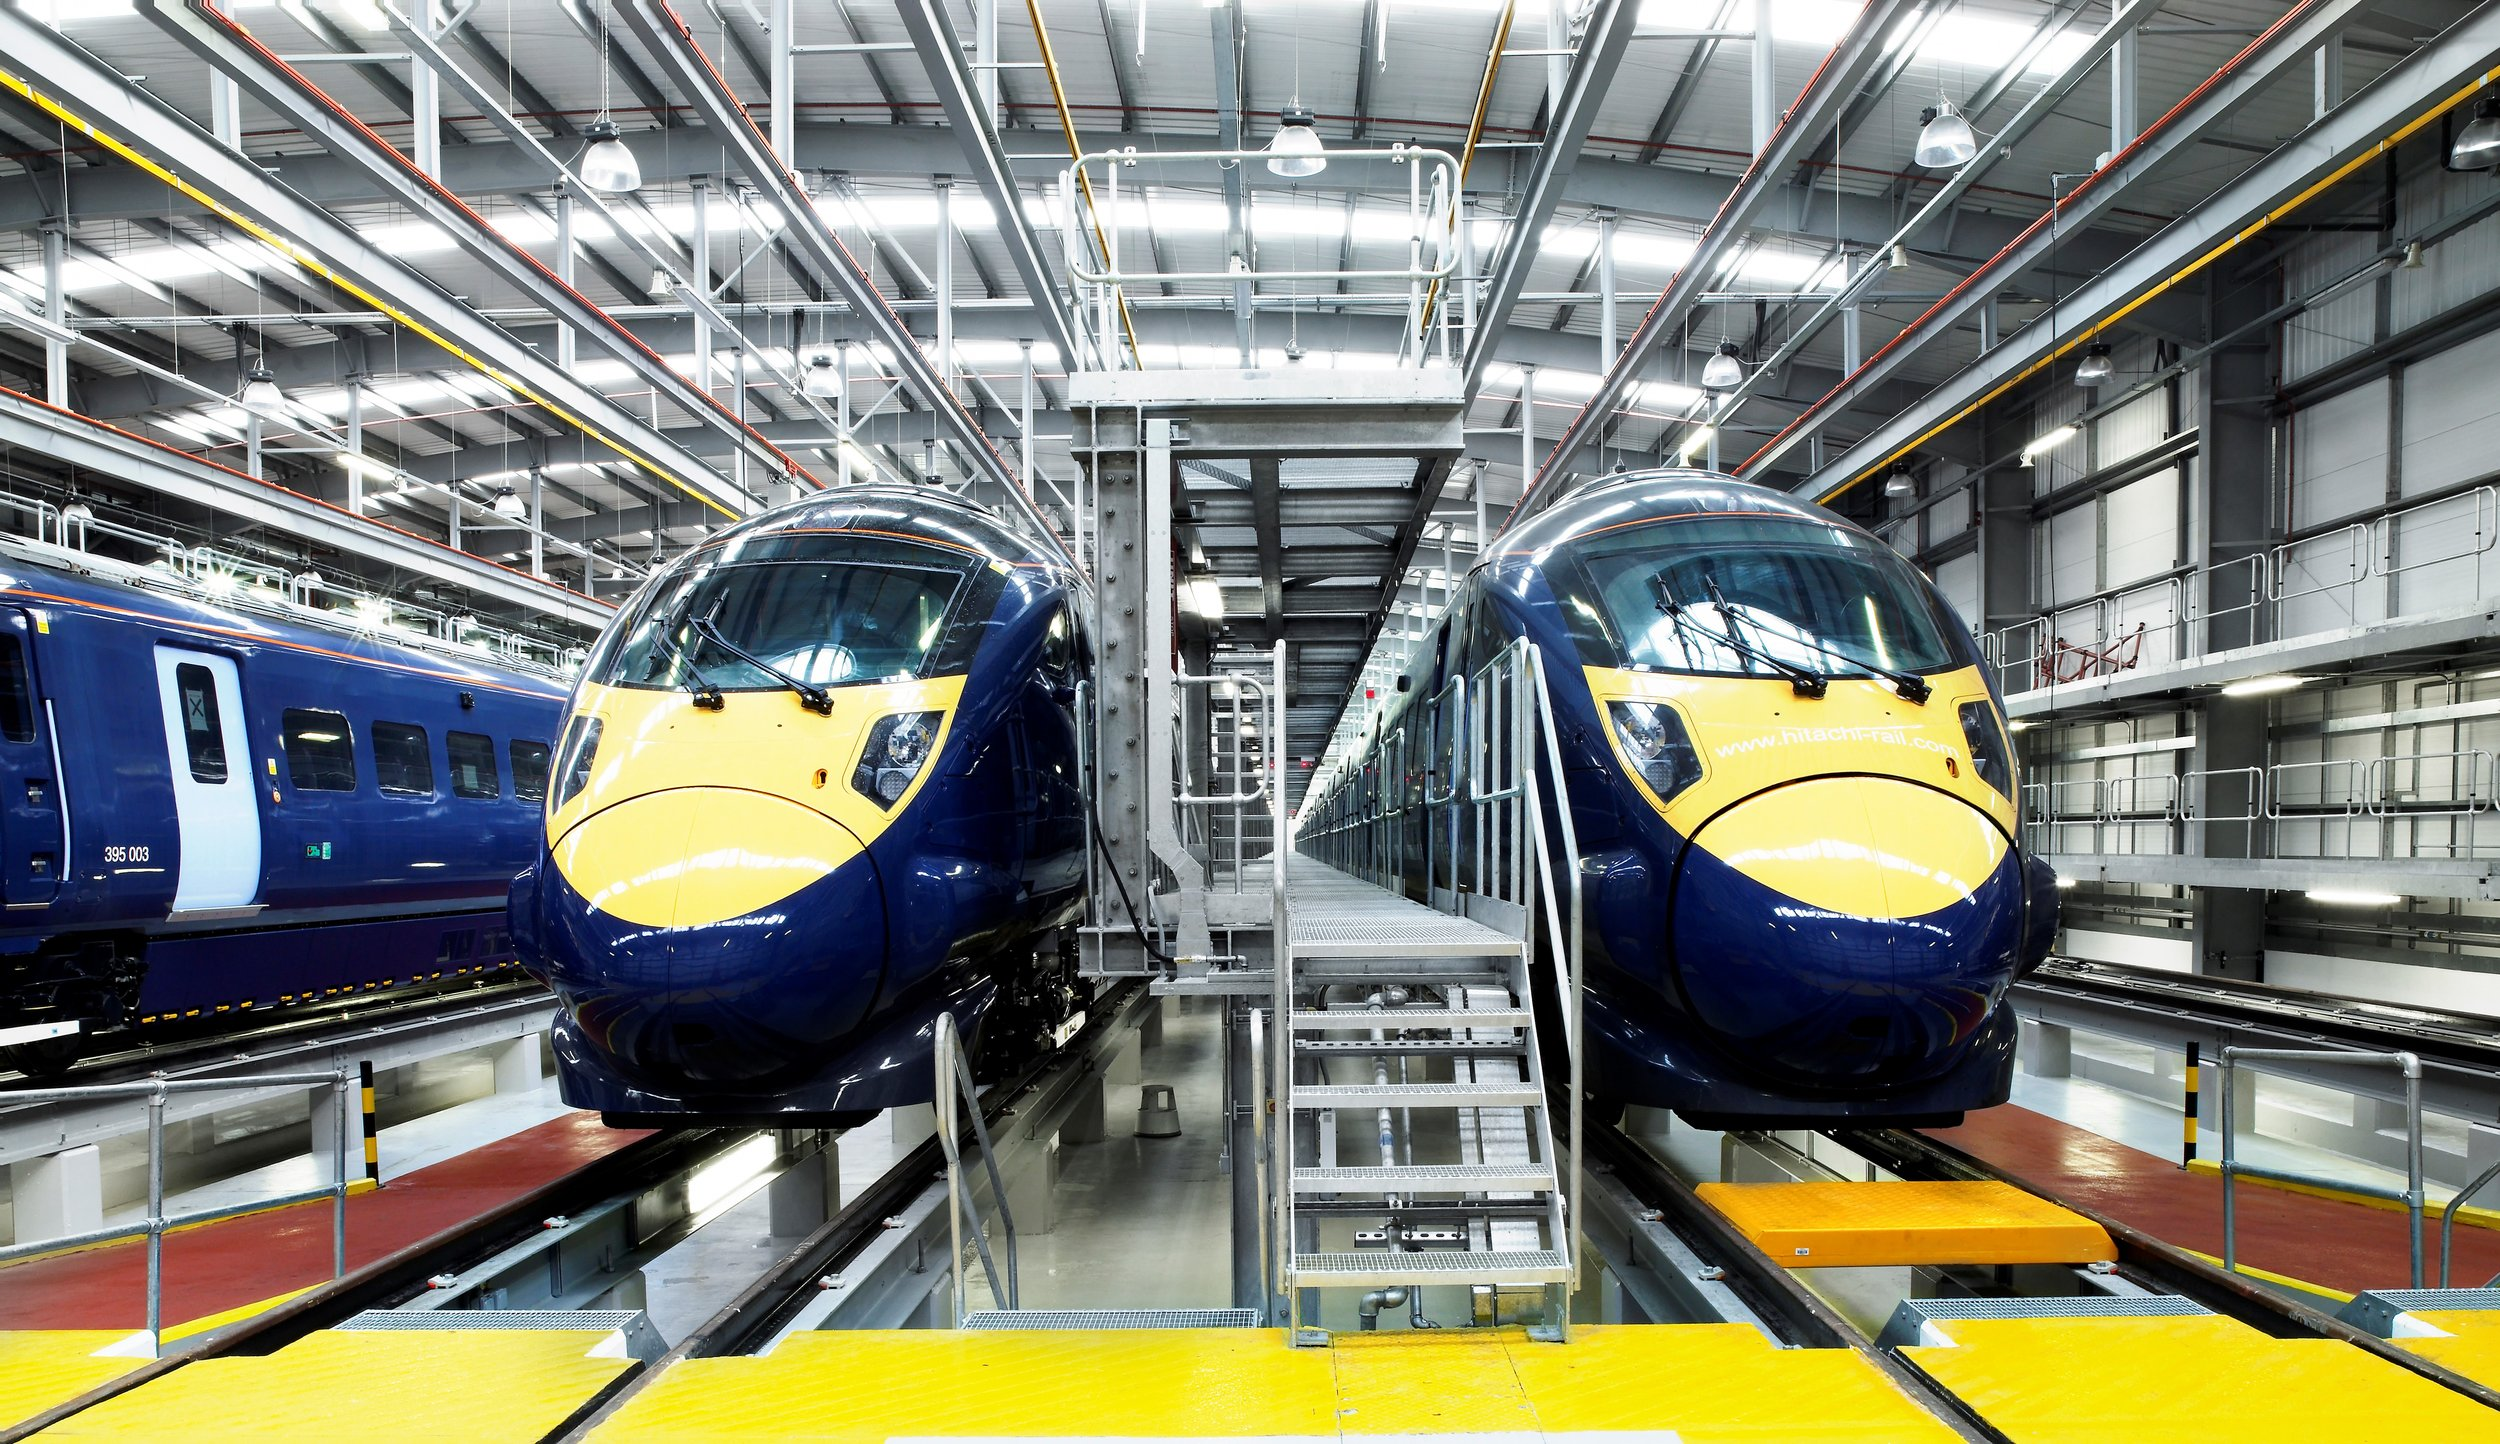 Providing project management, engineering and design services in the rail industry for over thirty years.